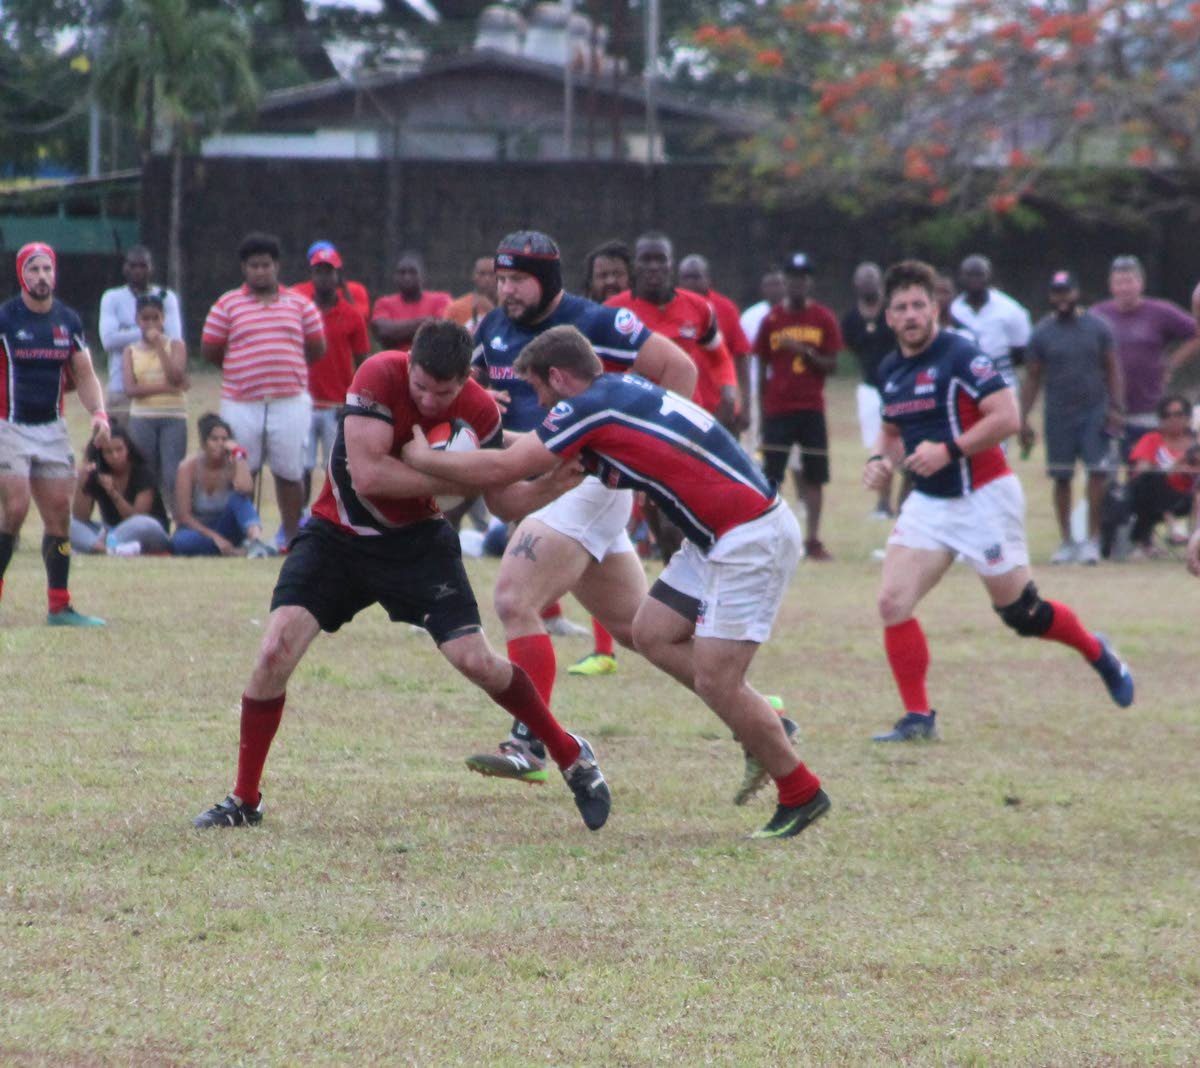 TT's Gordon Dalgliesh, left, is tackled by USA South's Patrick Audino in a RAN Men's 15s match at St Mary's Ground, St Clair, Saturday.